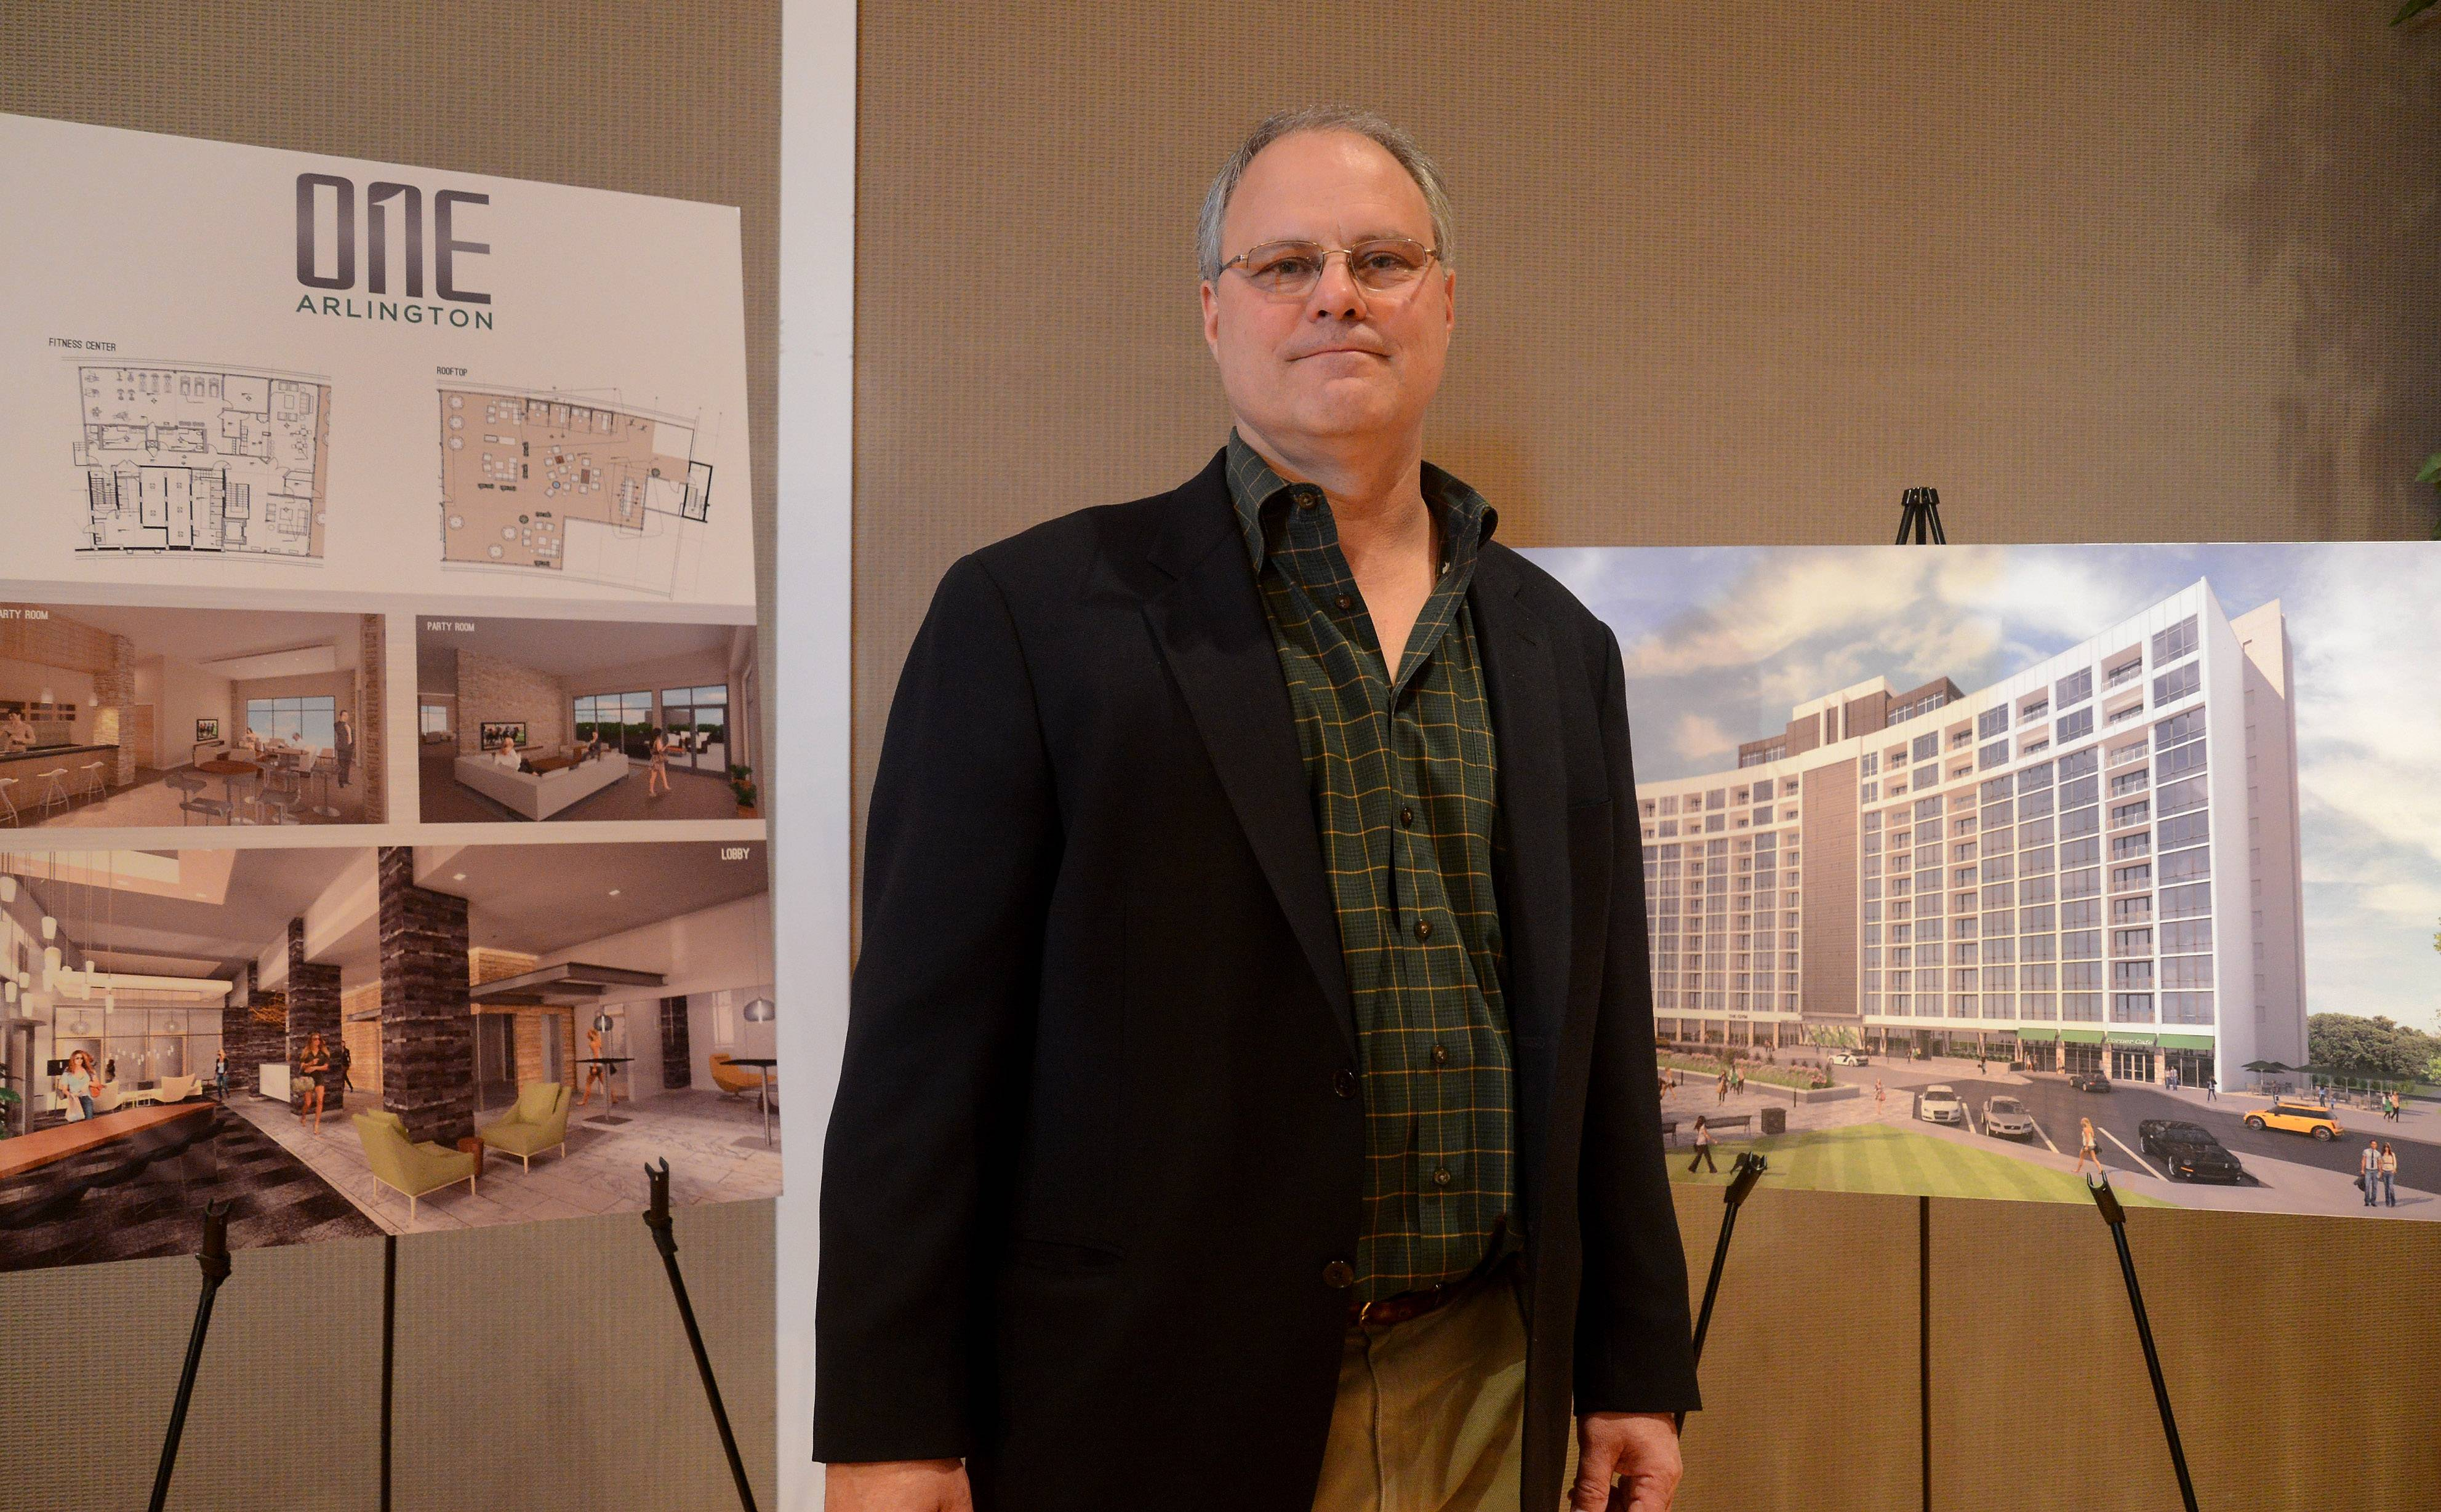 Rich Cavenaugh, president of Stoneleigh Companies, stands in front of mock-ups of the Arlington Downs project.